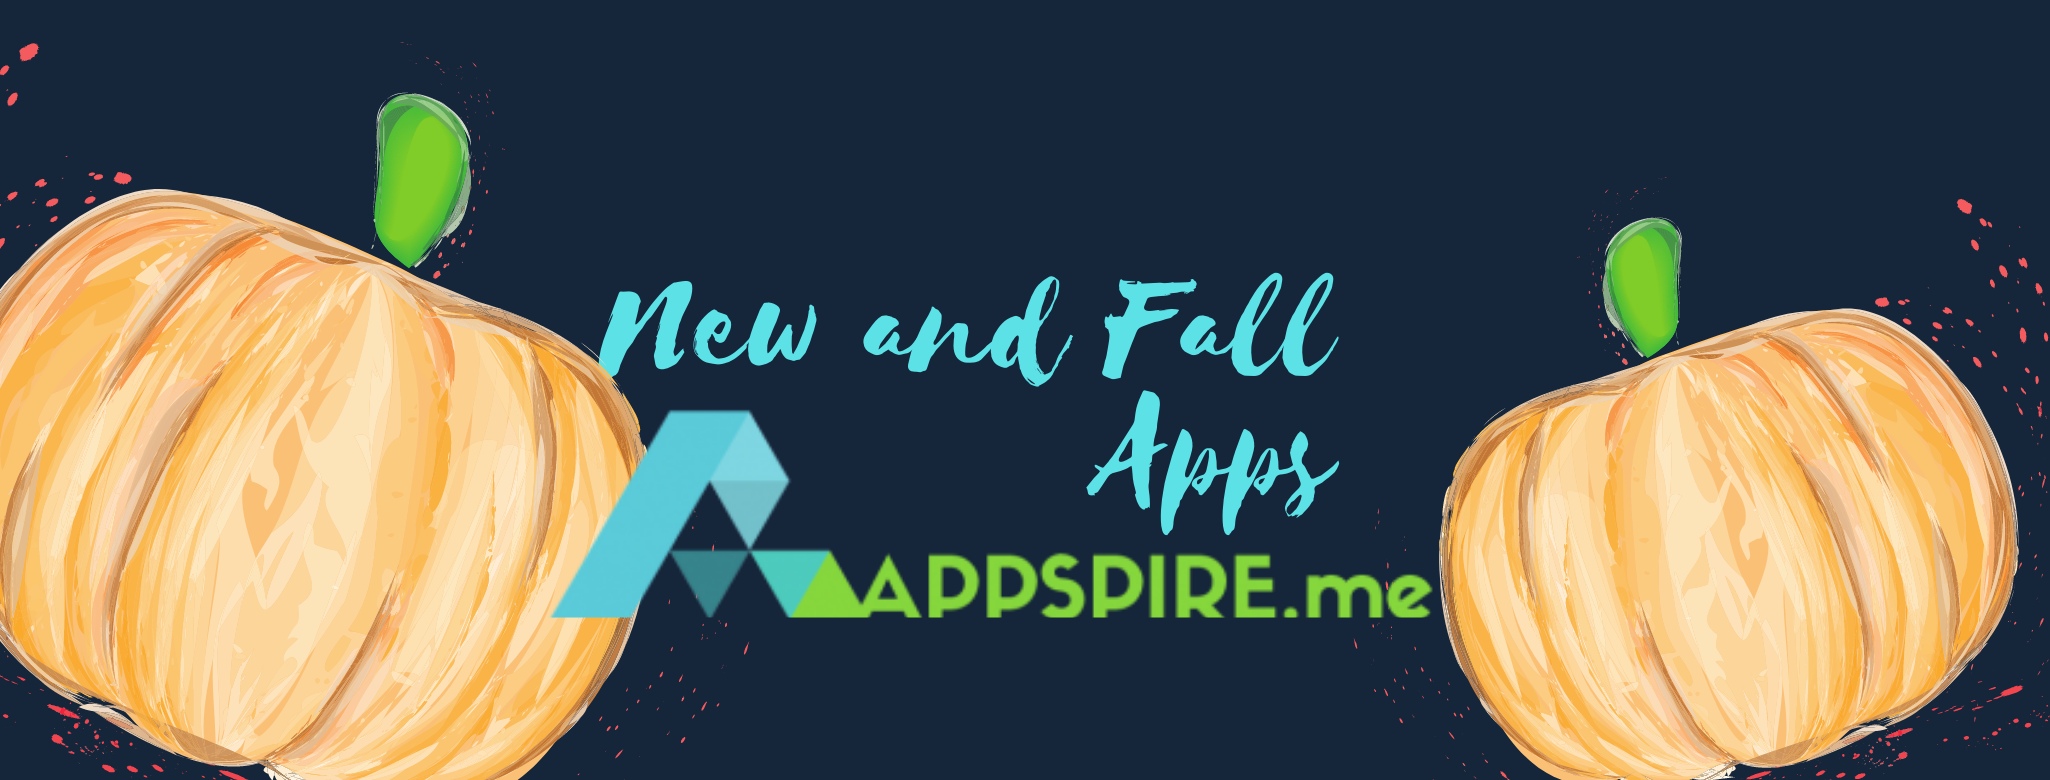 New Apps and Fall Apps